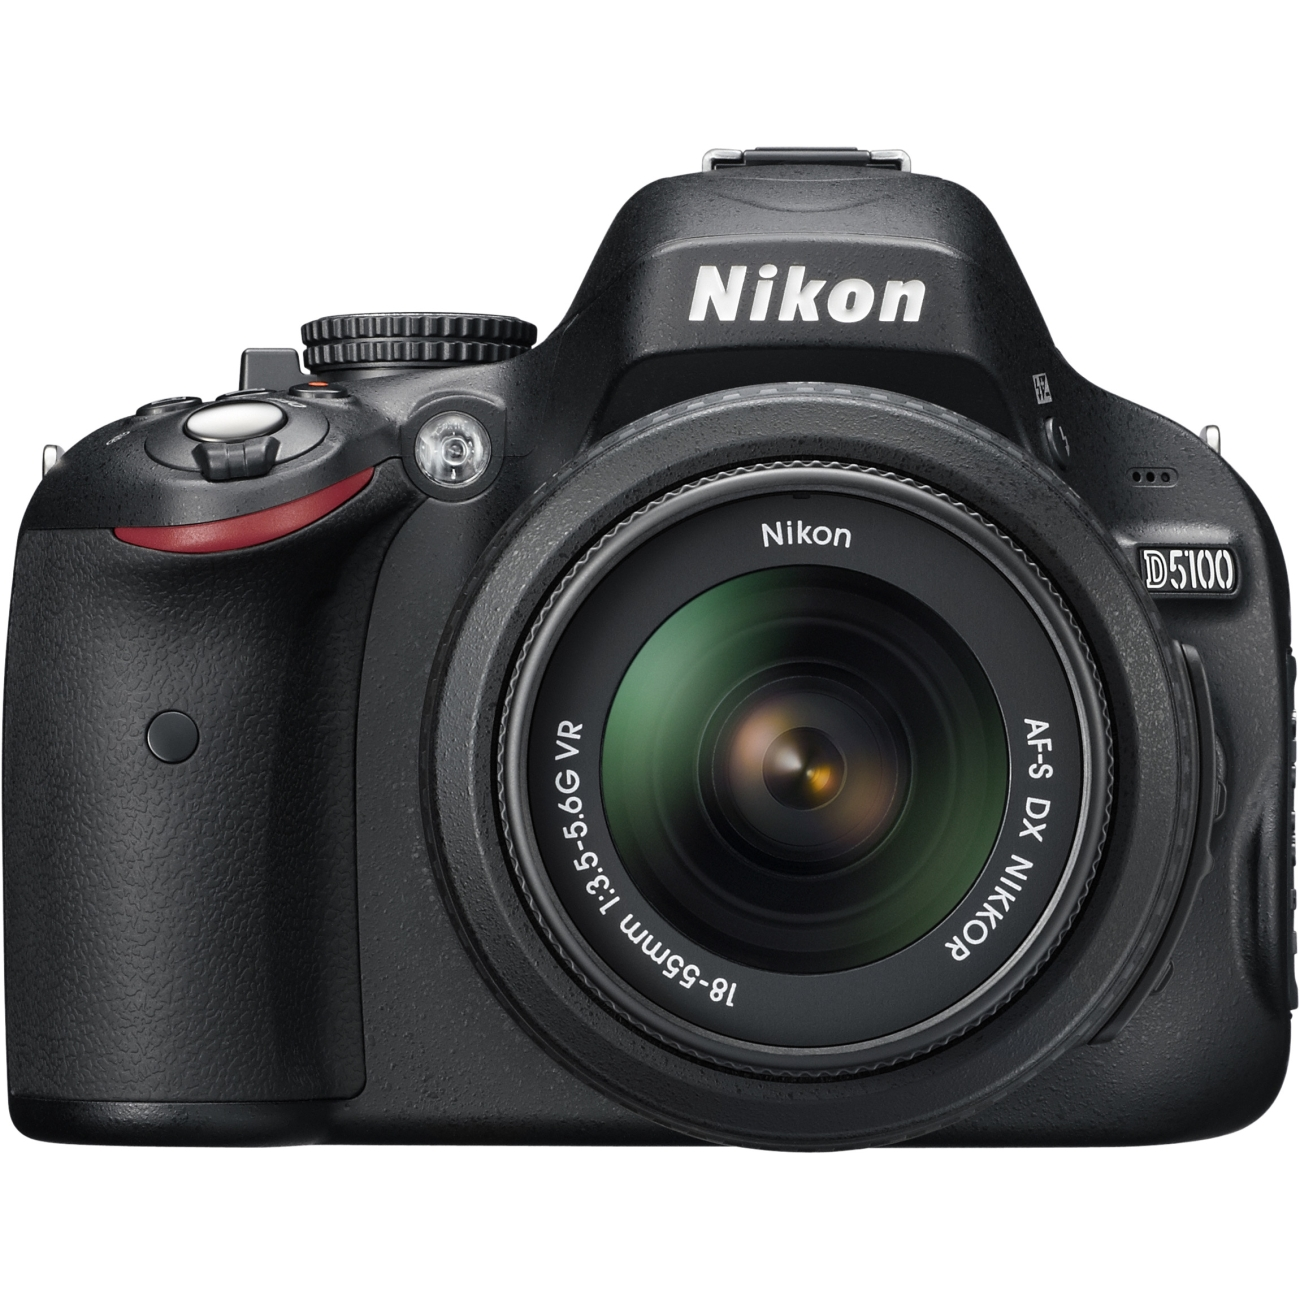 "Nikon D5100 16.2MP Digital SLR Camera (Body with Lens Kit) 3"""" LCD - 3.1x Optical Zoom - 25478"